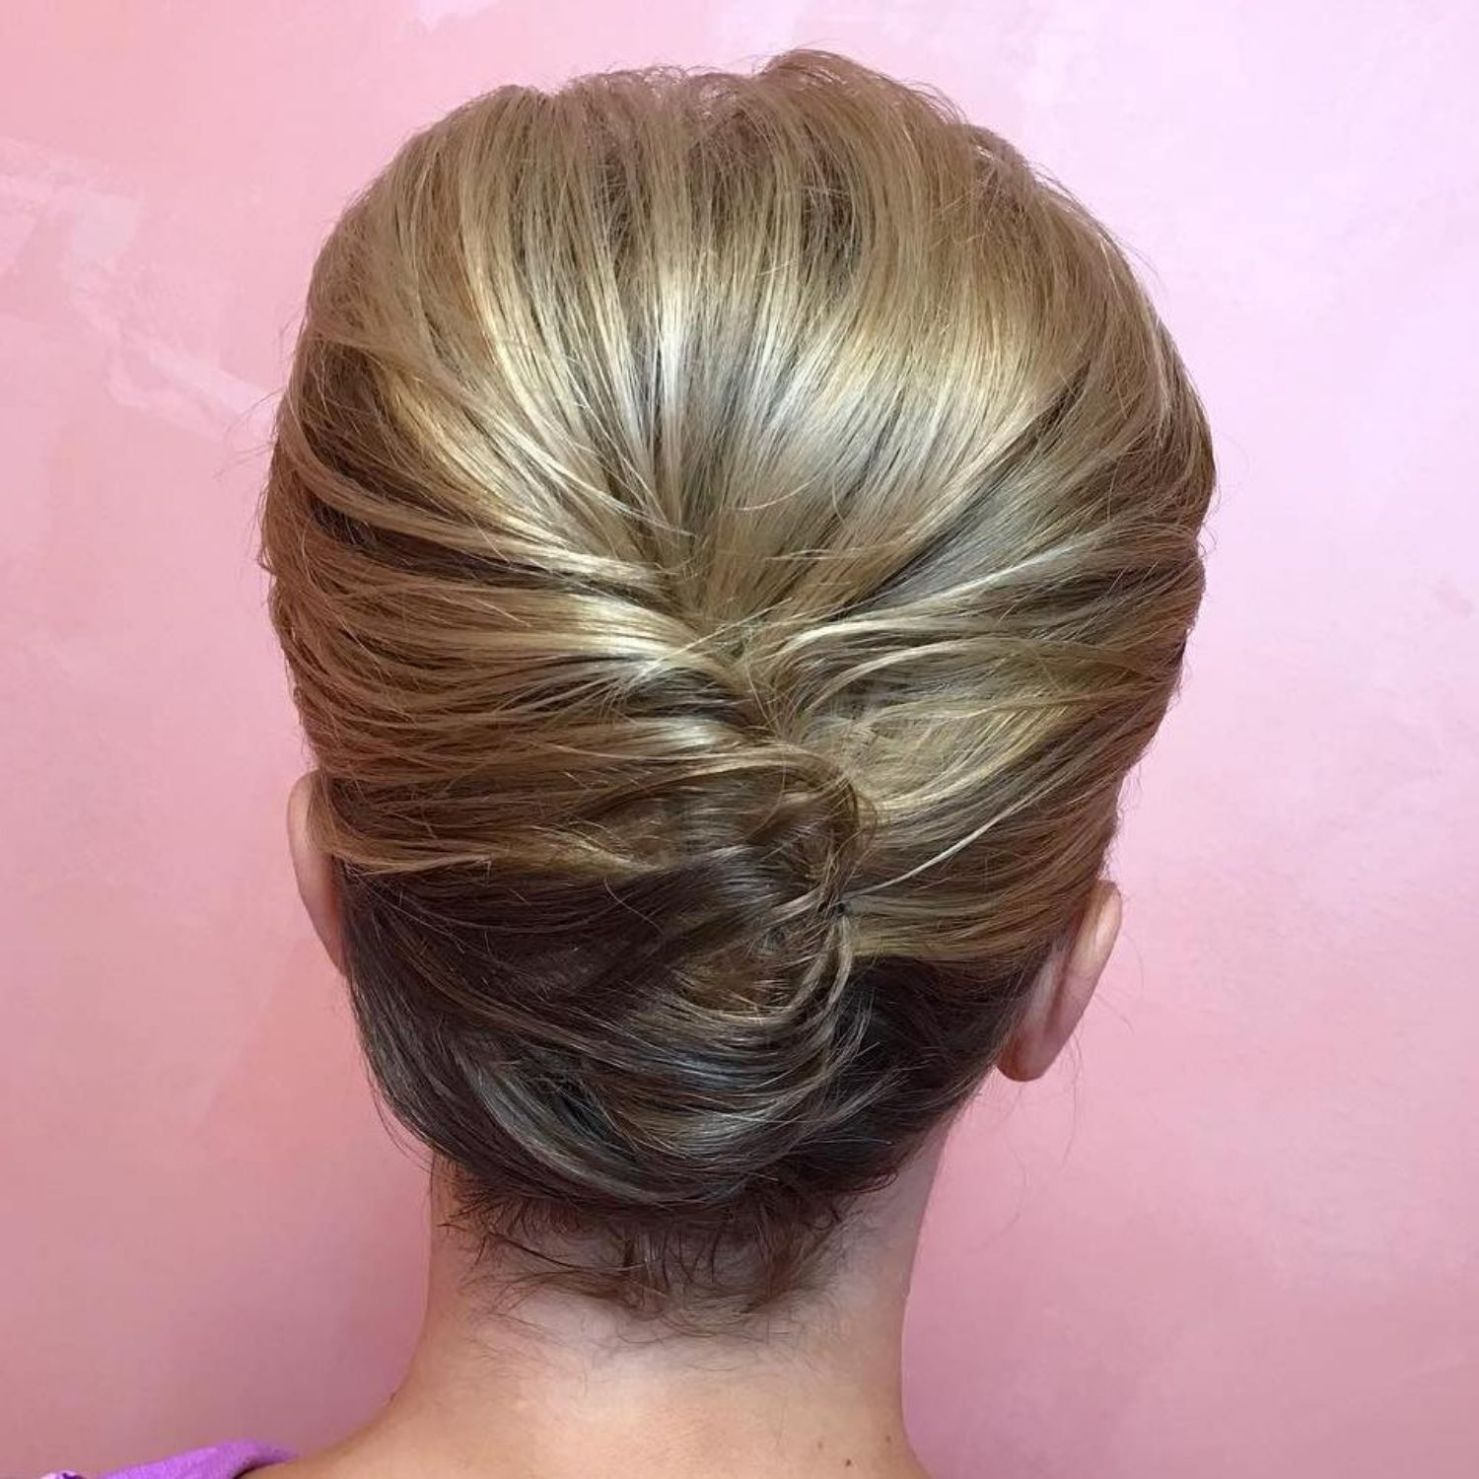 60 Creative Updo Ideas For Short Hair With Images Hairdos For Short Hair French Twist Hair Short Hair Updo